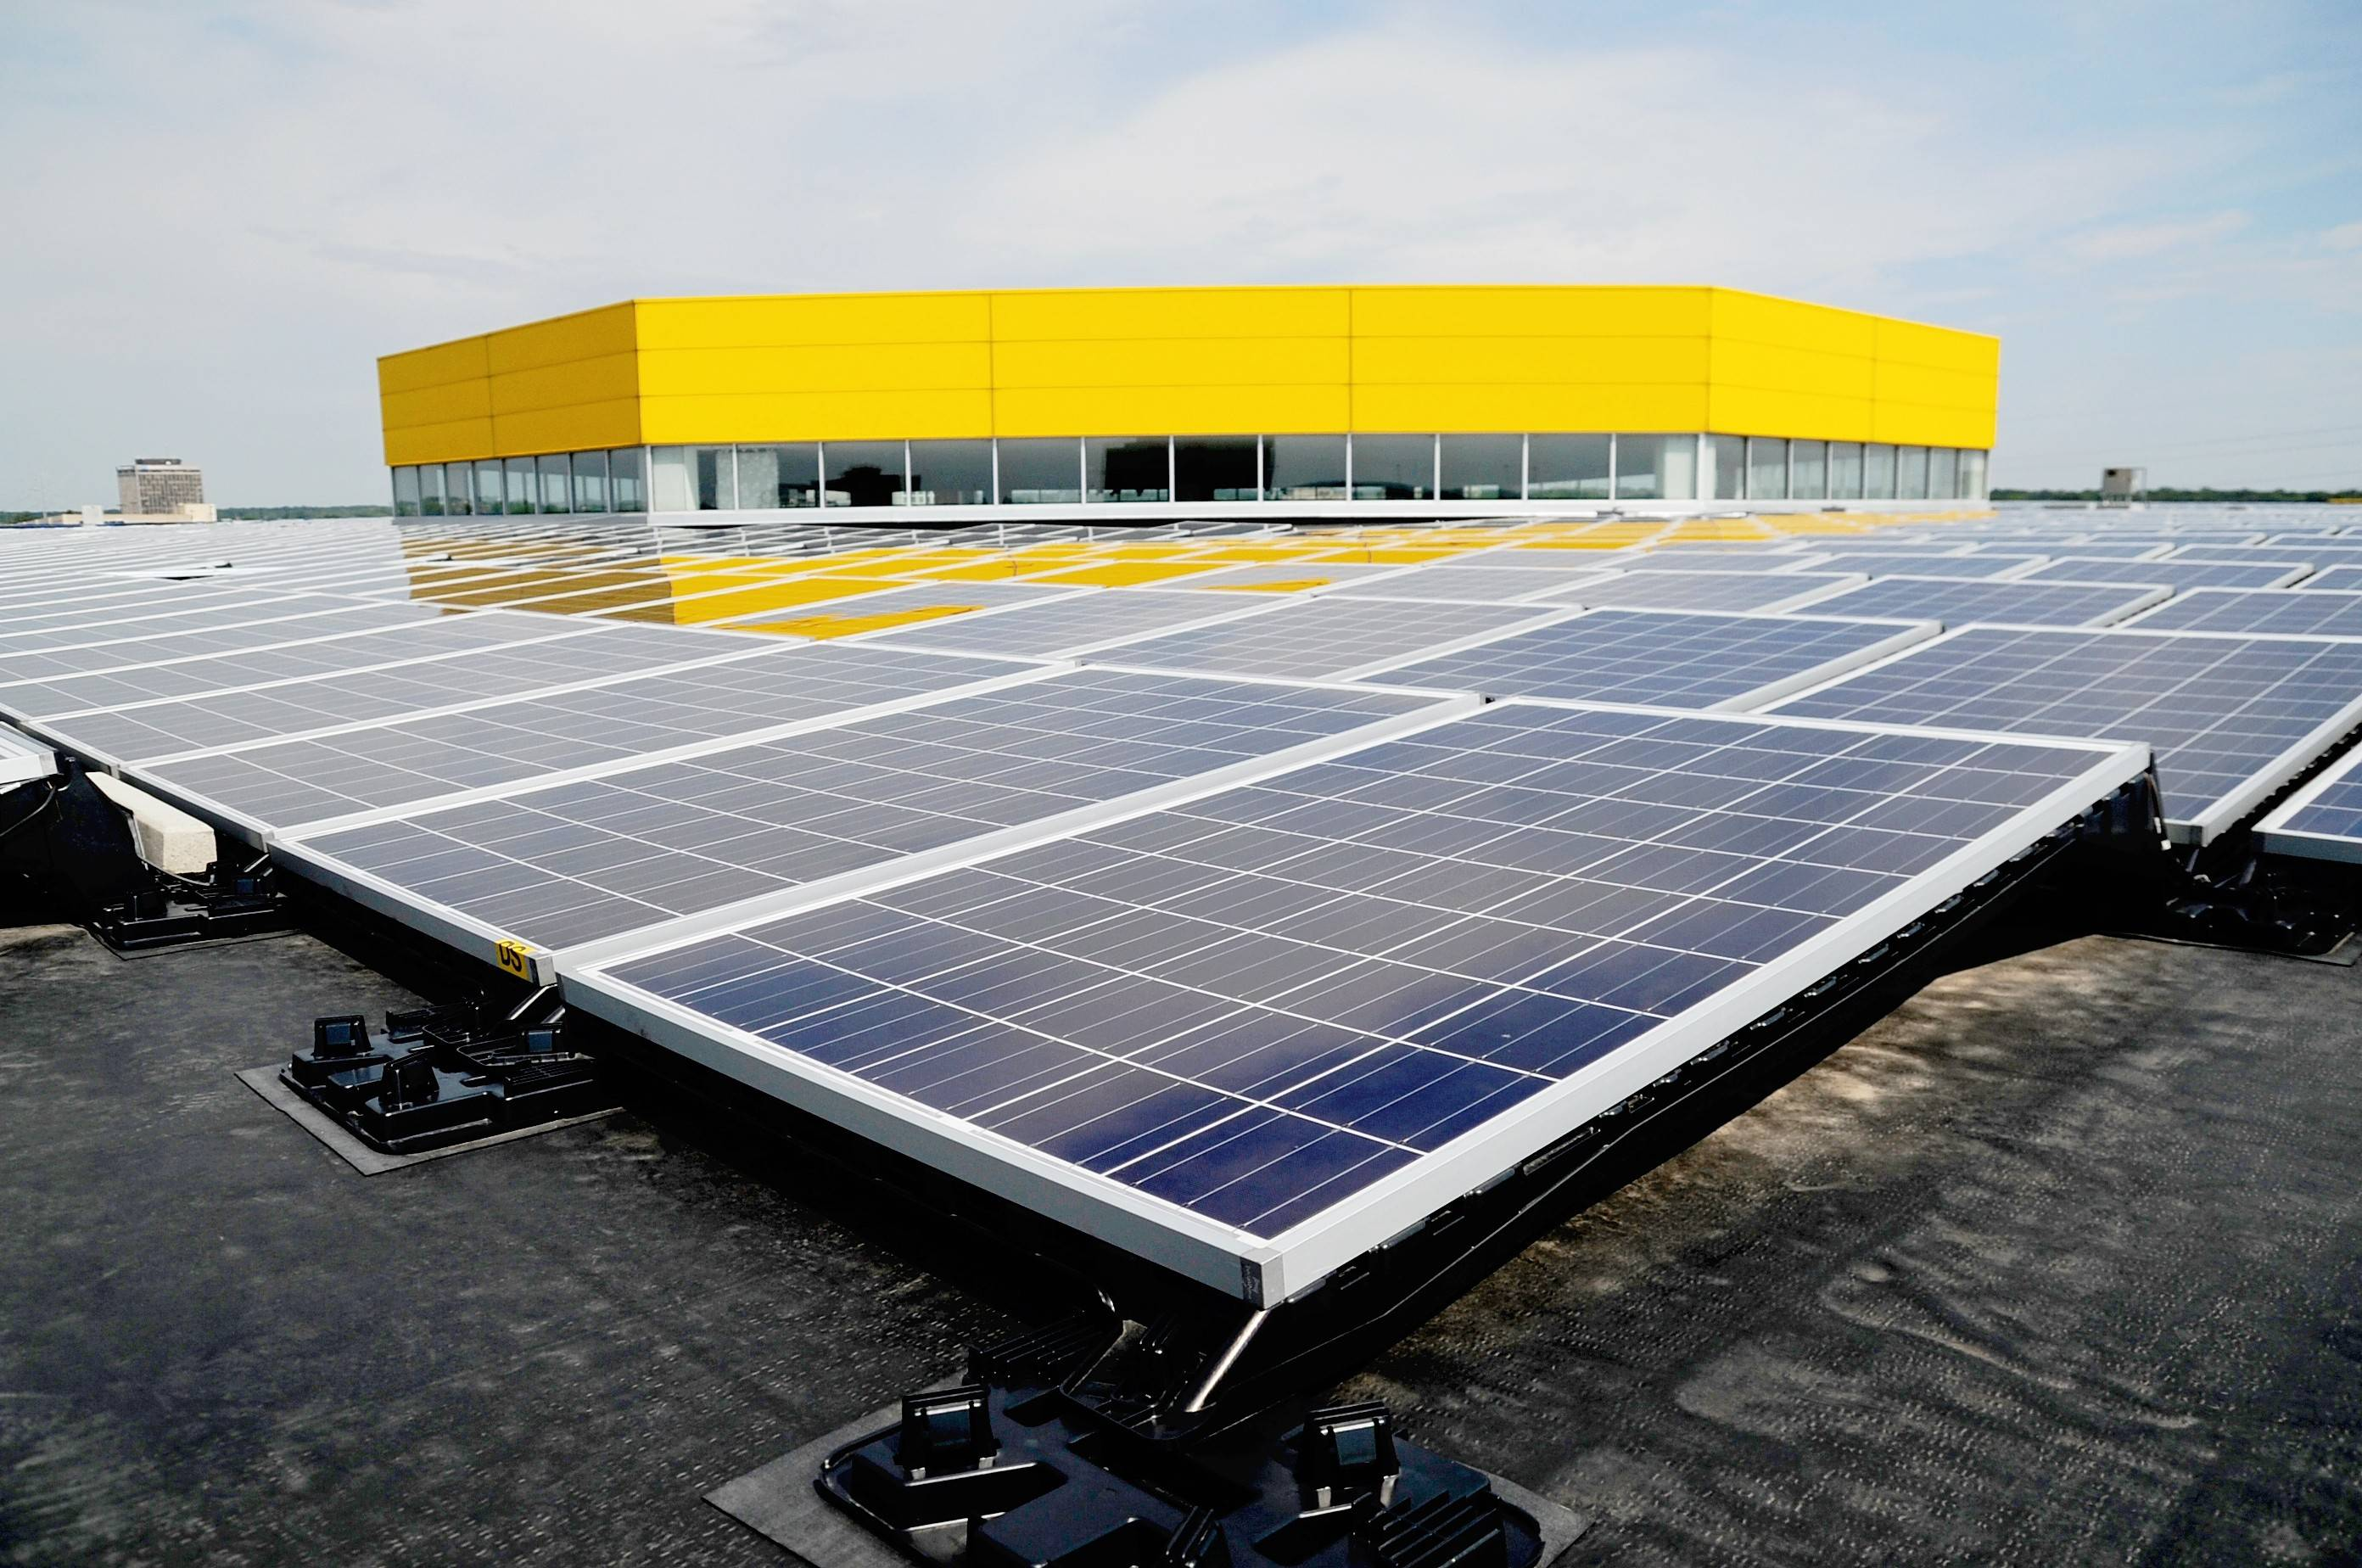 Solar energy panels line the roof of the Ikea store in Schaumburg. ComEd officials said the electric utility will make a major push over the next 13 years to increase the amount of electricity generated from solar energy, the next step following the company's completion of the smart grid system.